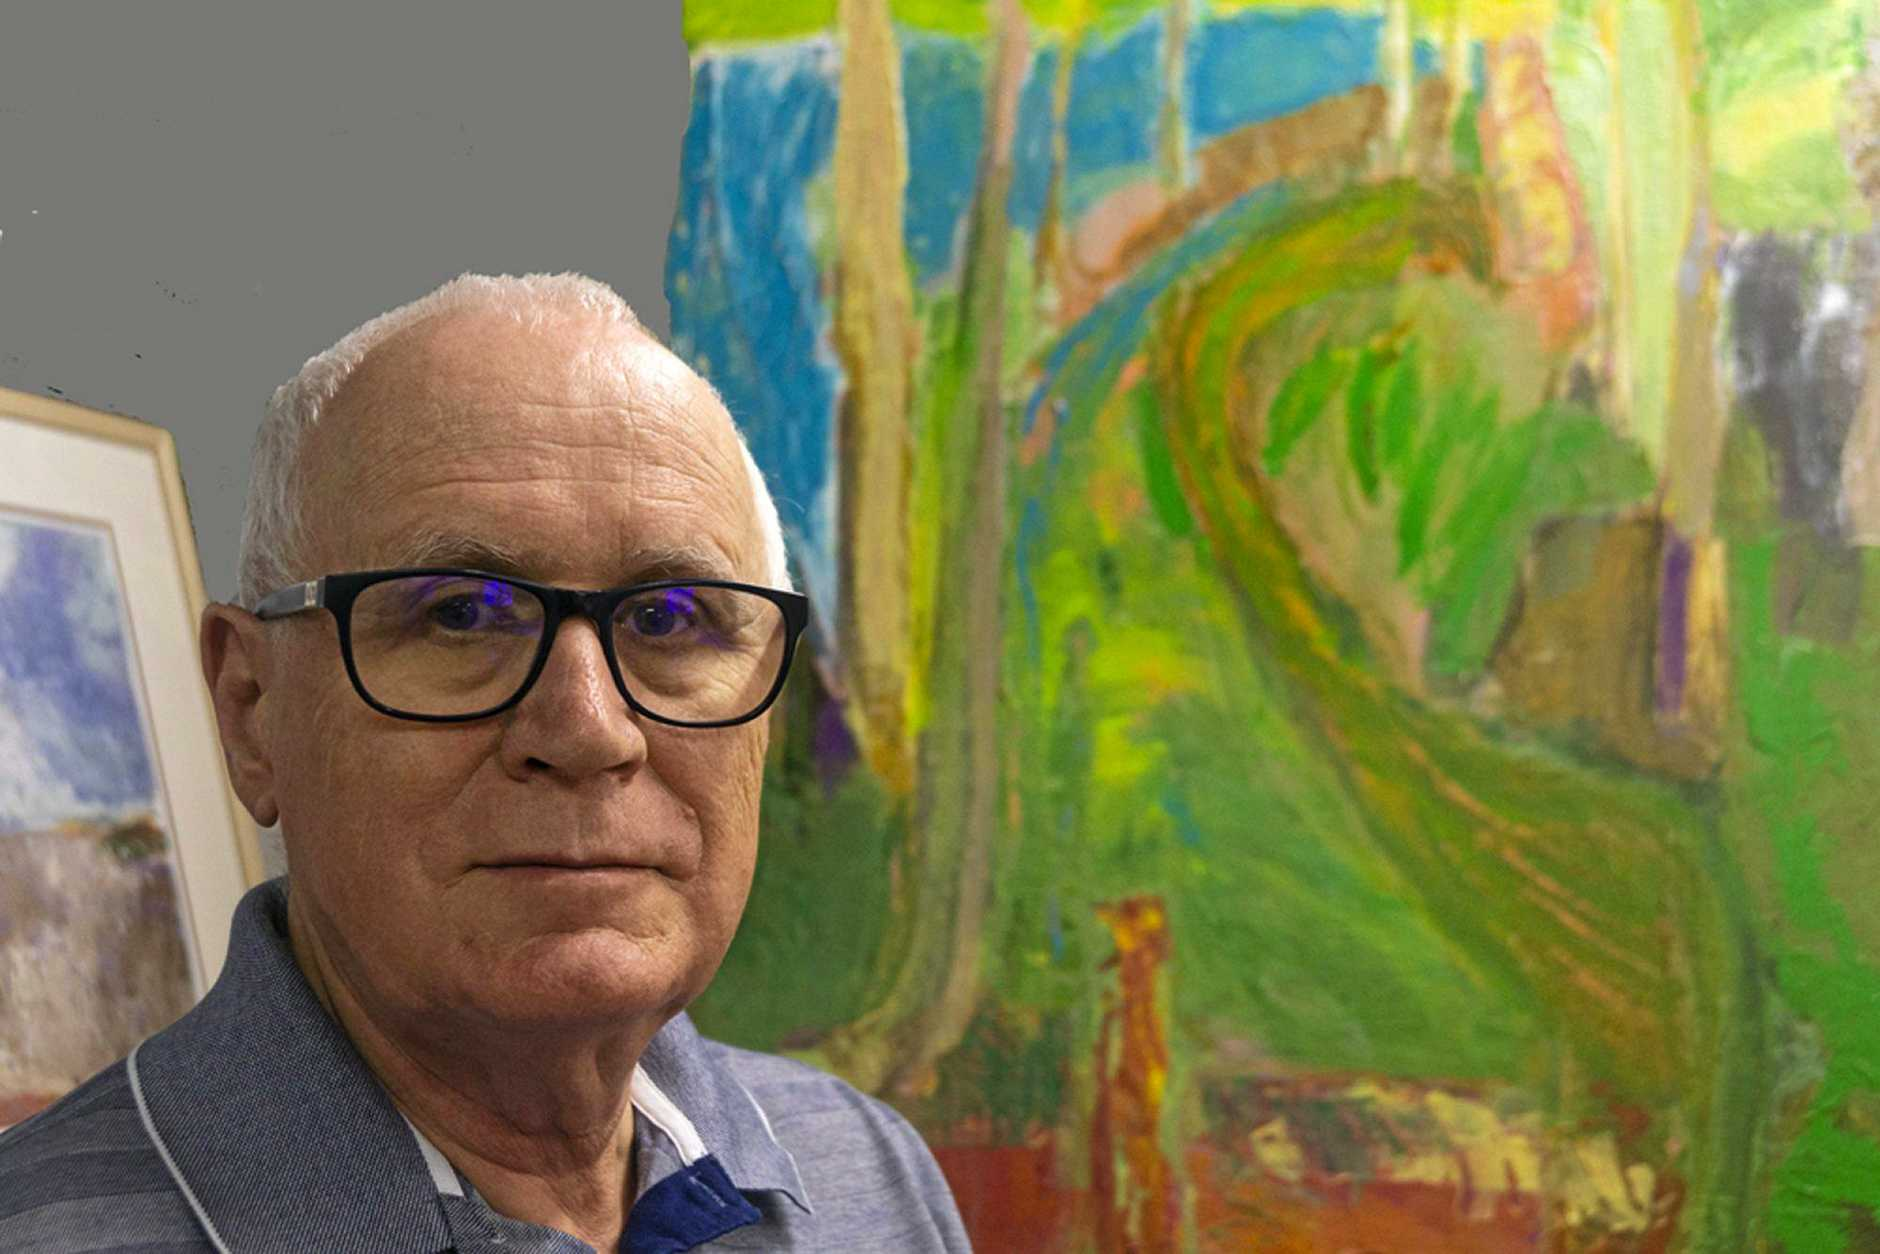 Wilhelmus Breikers holds a Diploma of Fine Art from The Queensland College of Art and a Graduate Diploma of Teaching from The Queensland University of Technology.